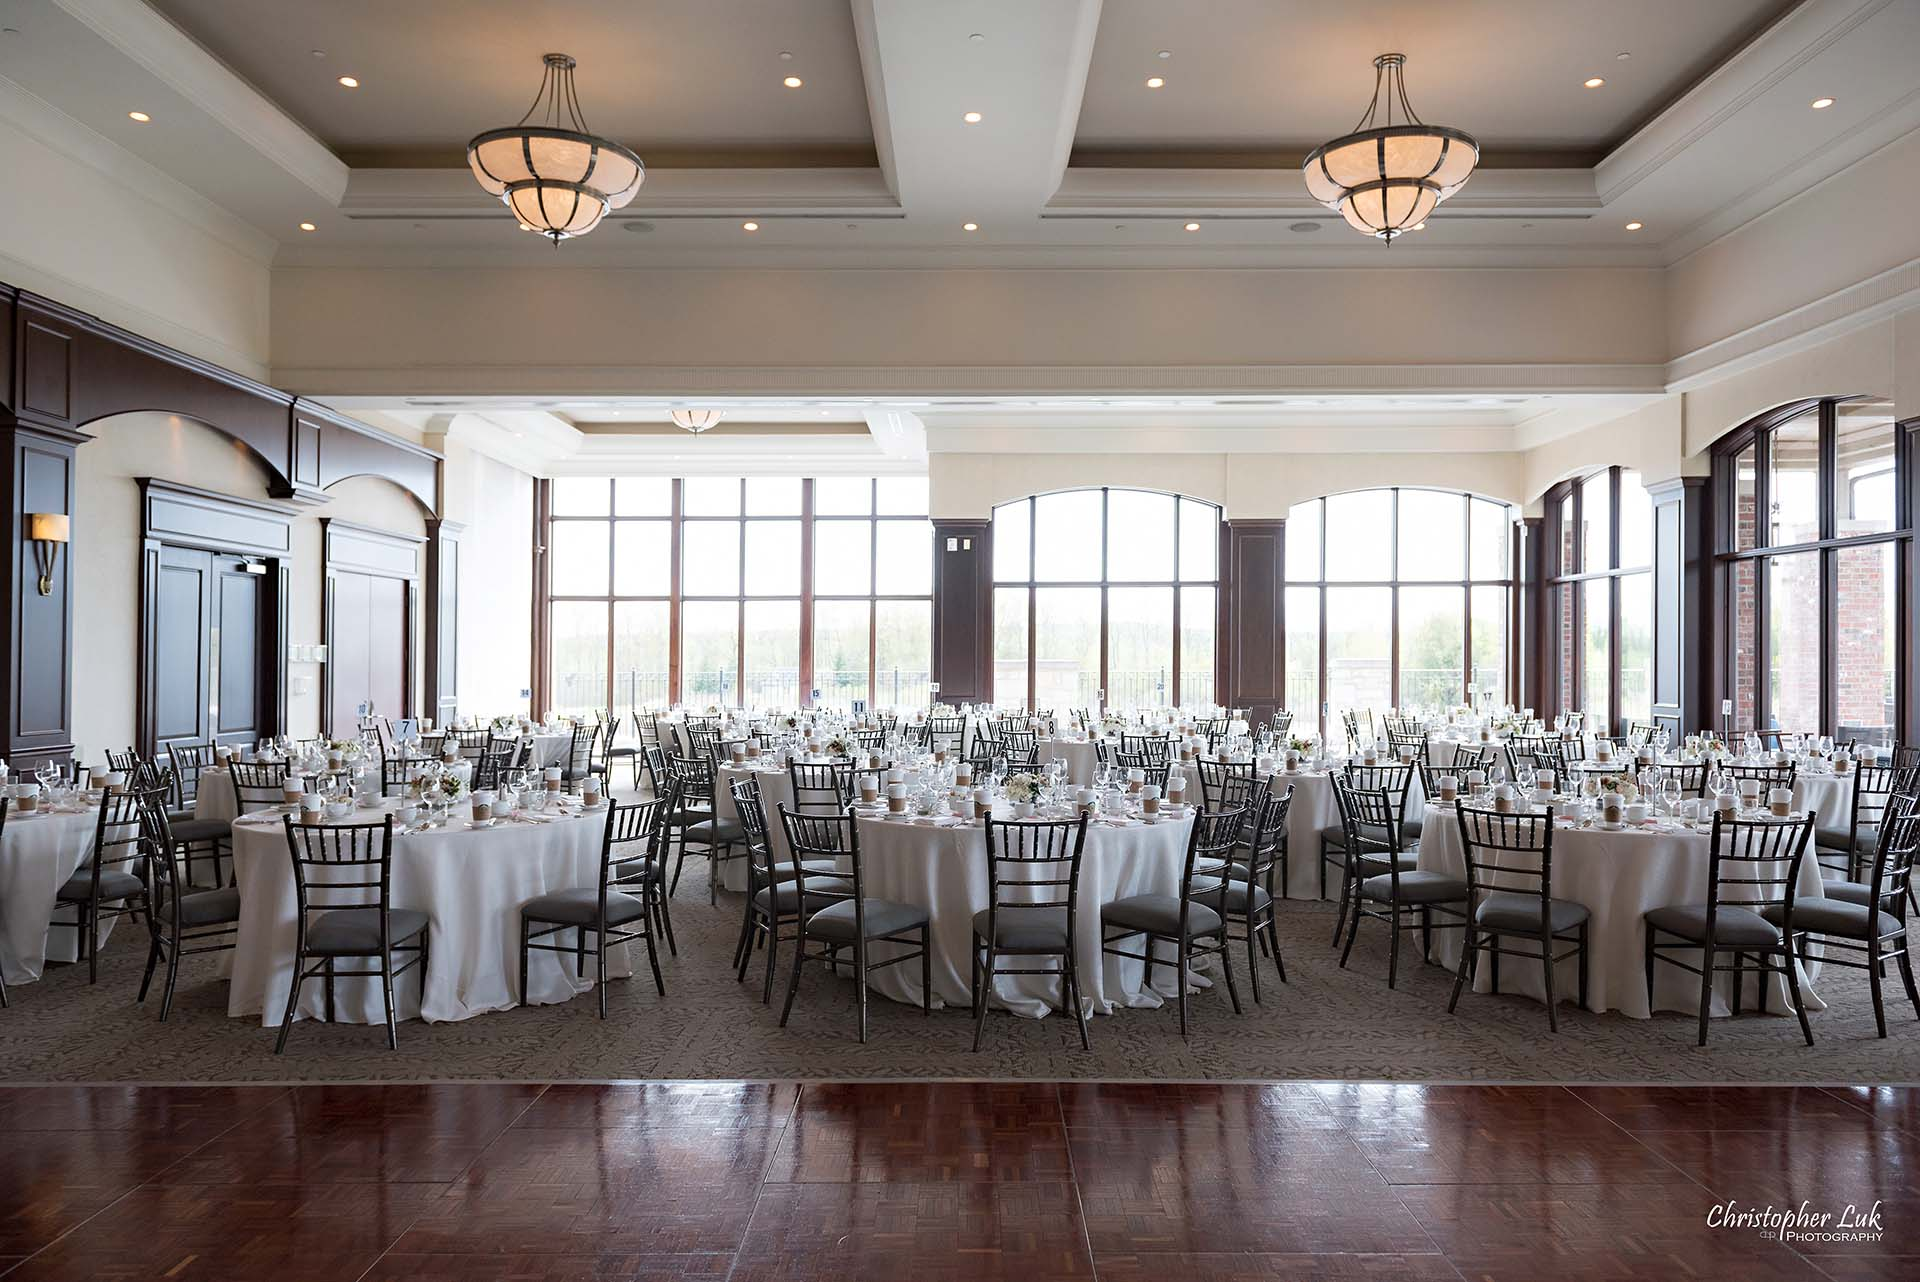 Christopher Luk Toronto Wedding Photographer Eagles Nest Golf Club Course Clubhouse Great Hall Dinner Reception Table Details Dance Floor Wide Angle